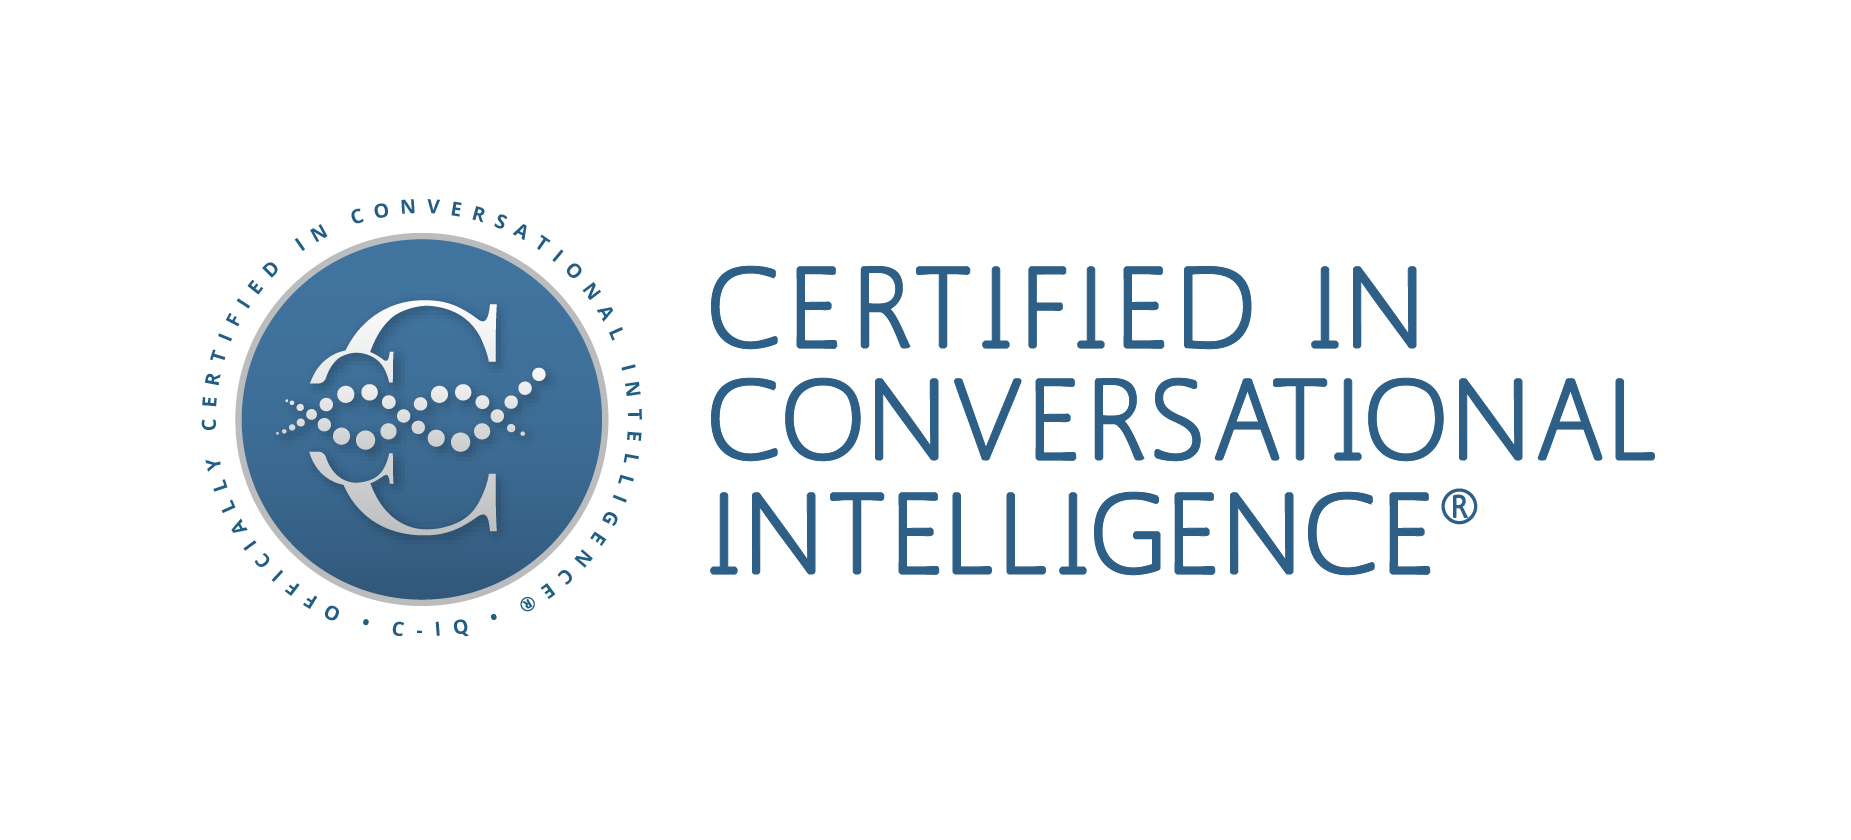 Conversational Intelligence®